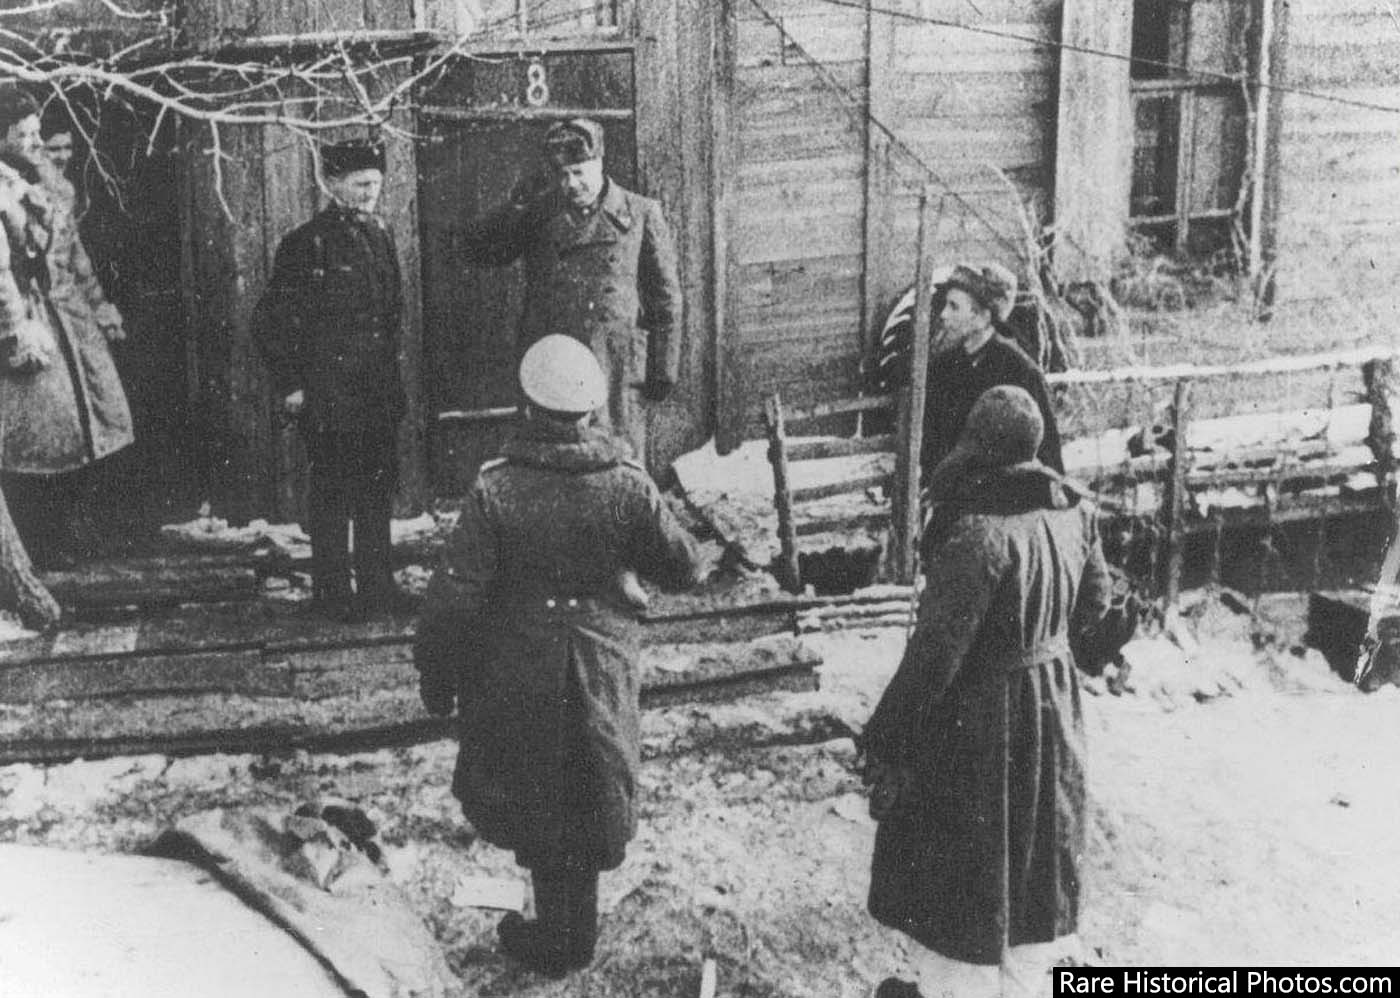 General Karl Strecker of the German Sixth Army surrenders to the Russians. February 2, 1943.